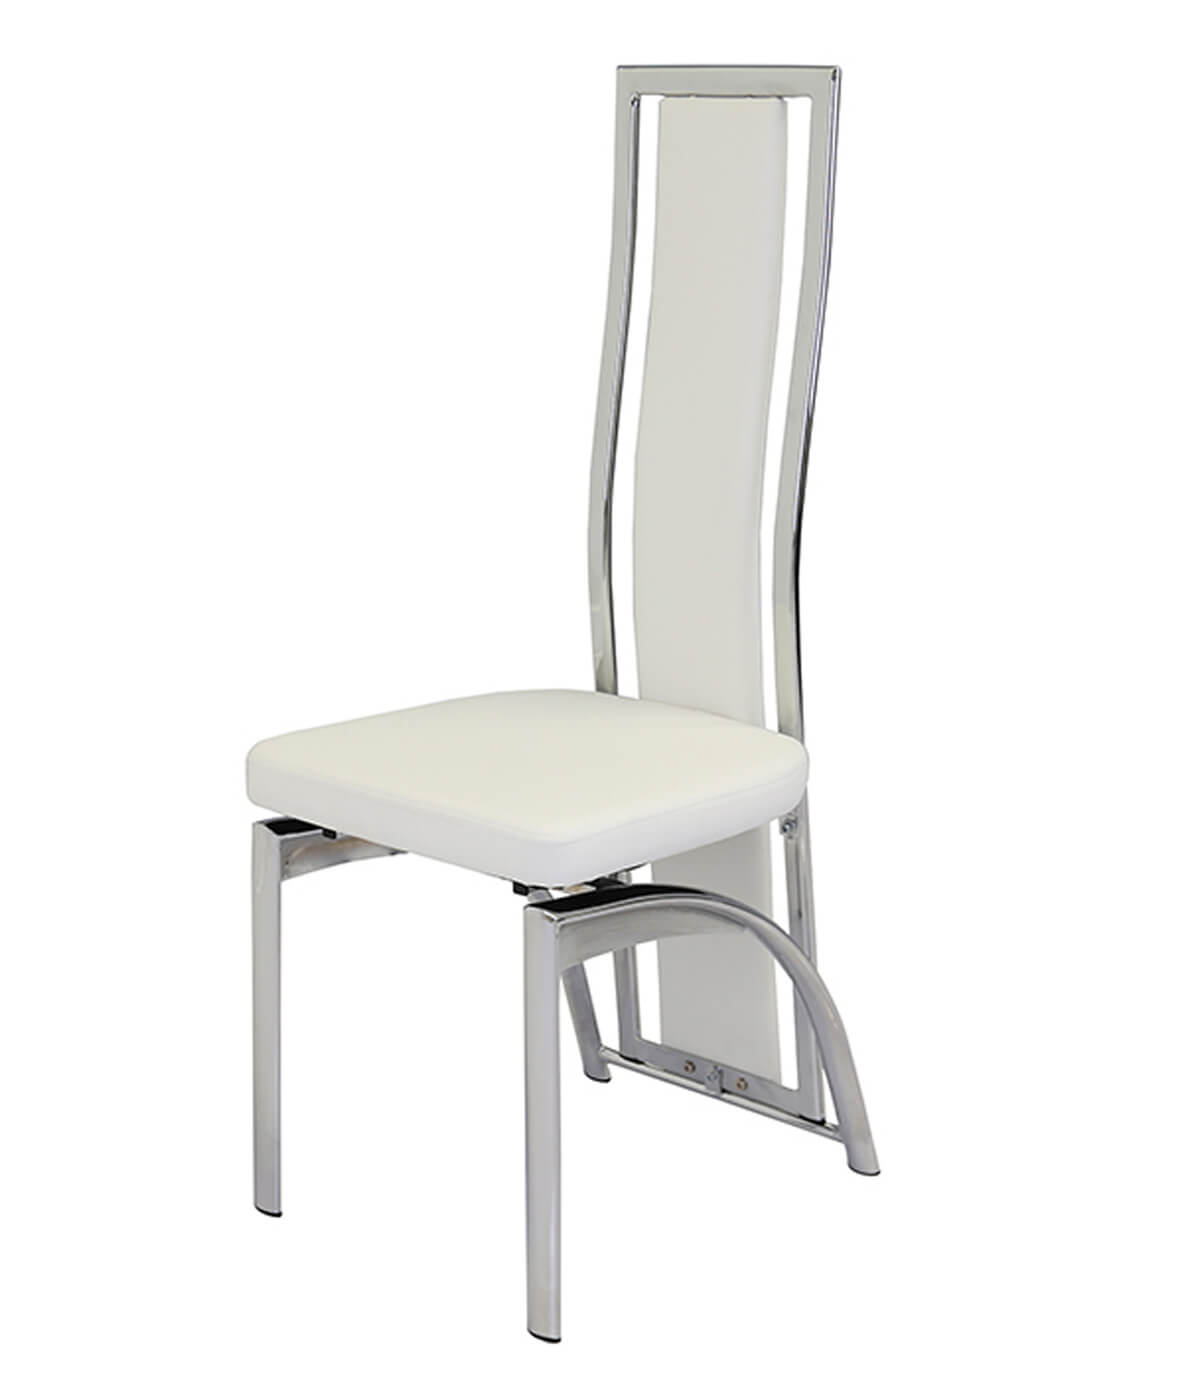 Mayfair White Leather Dining Chair - Manchester Furniture ...